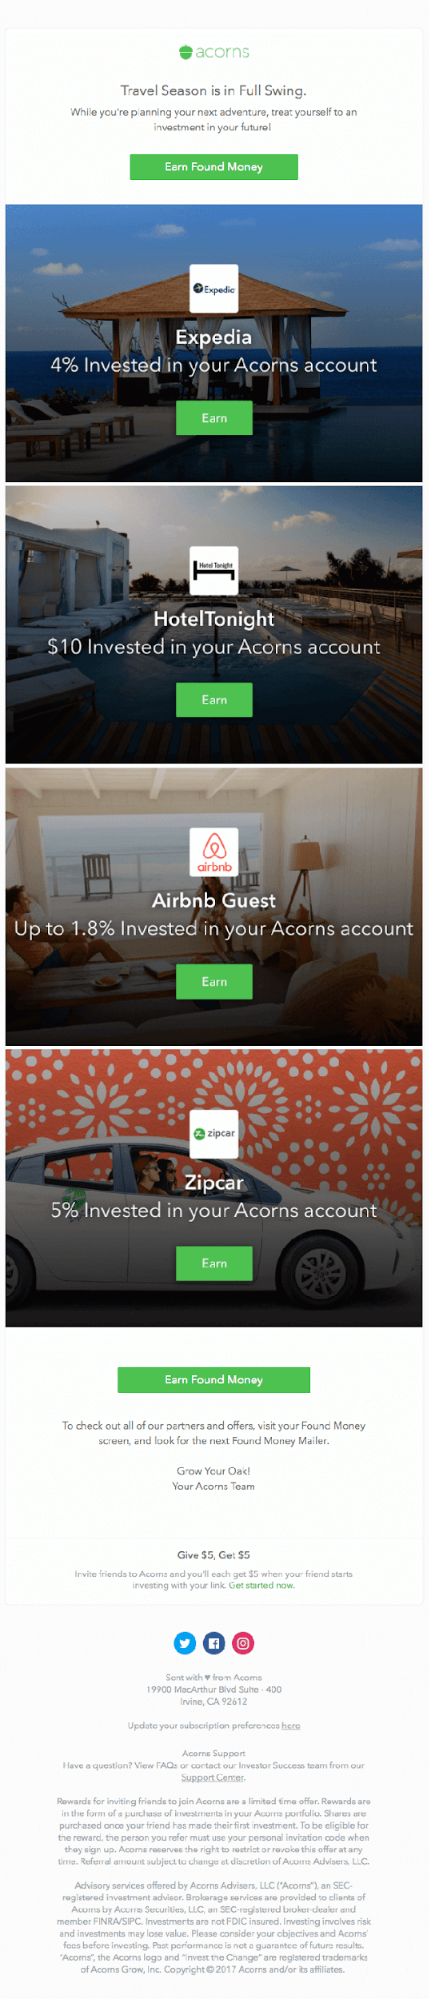 acorns-partner-referal-email